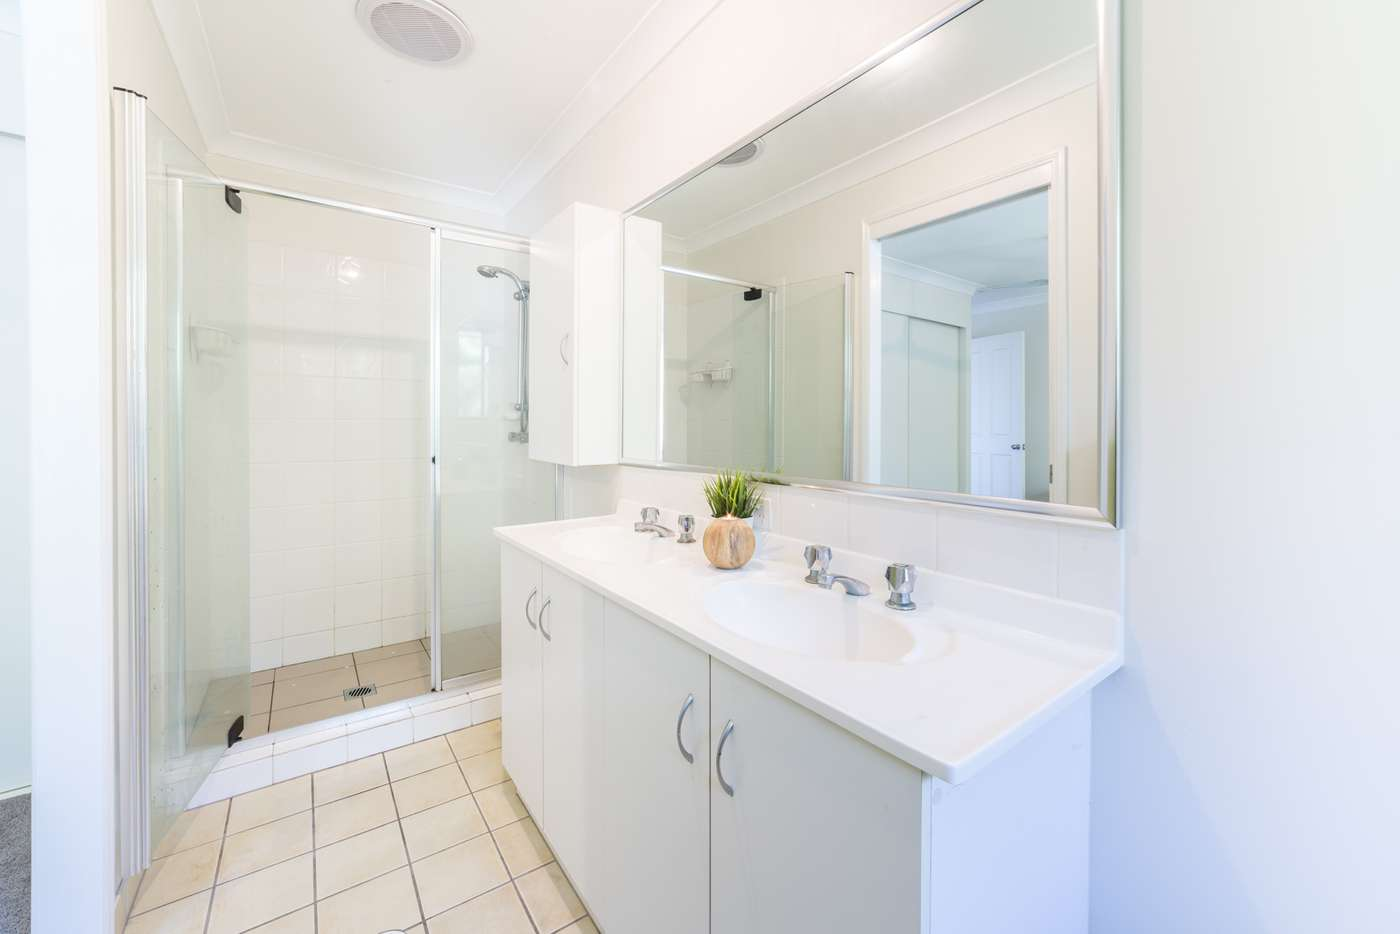 Fifth view of Homely house listing, 13/44-48 McLaren Road, Nerang QLD 4211